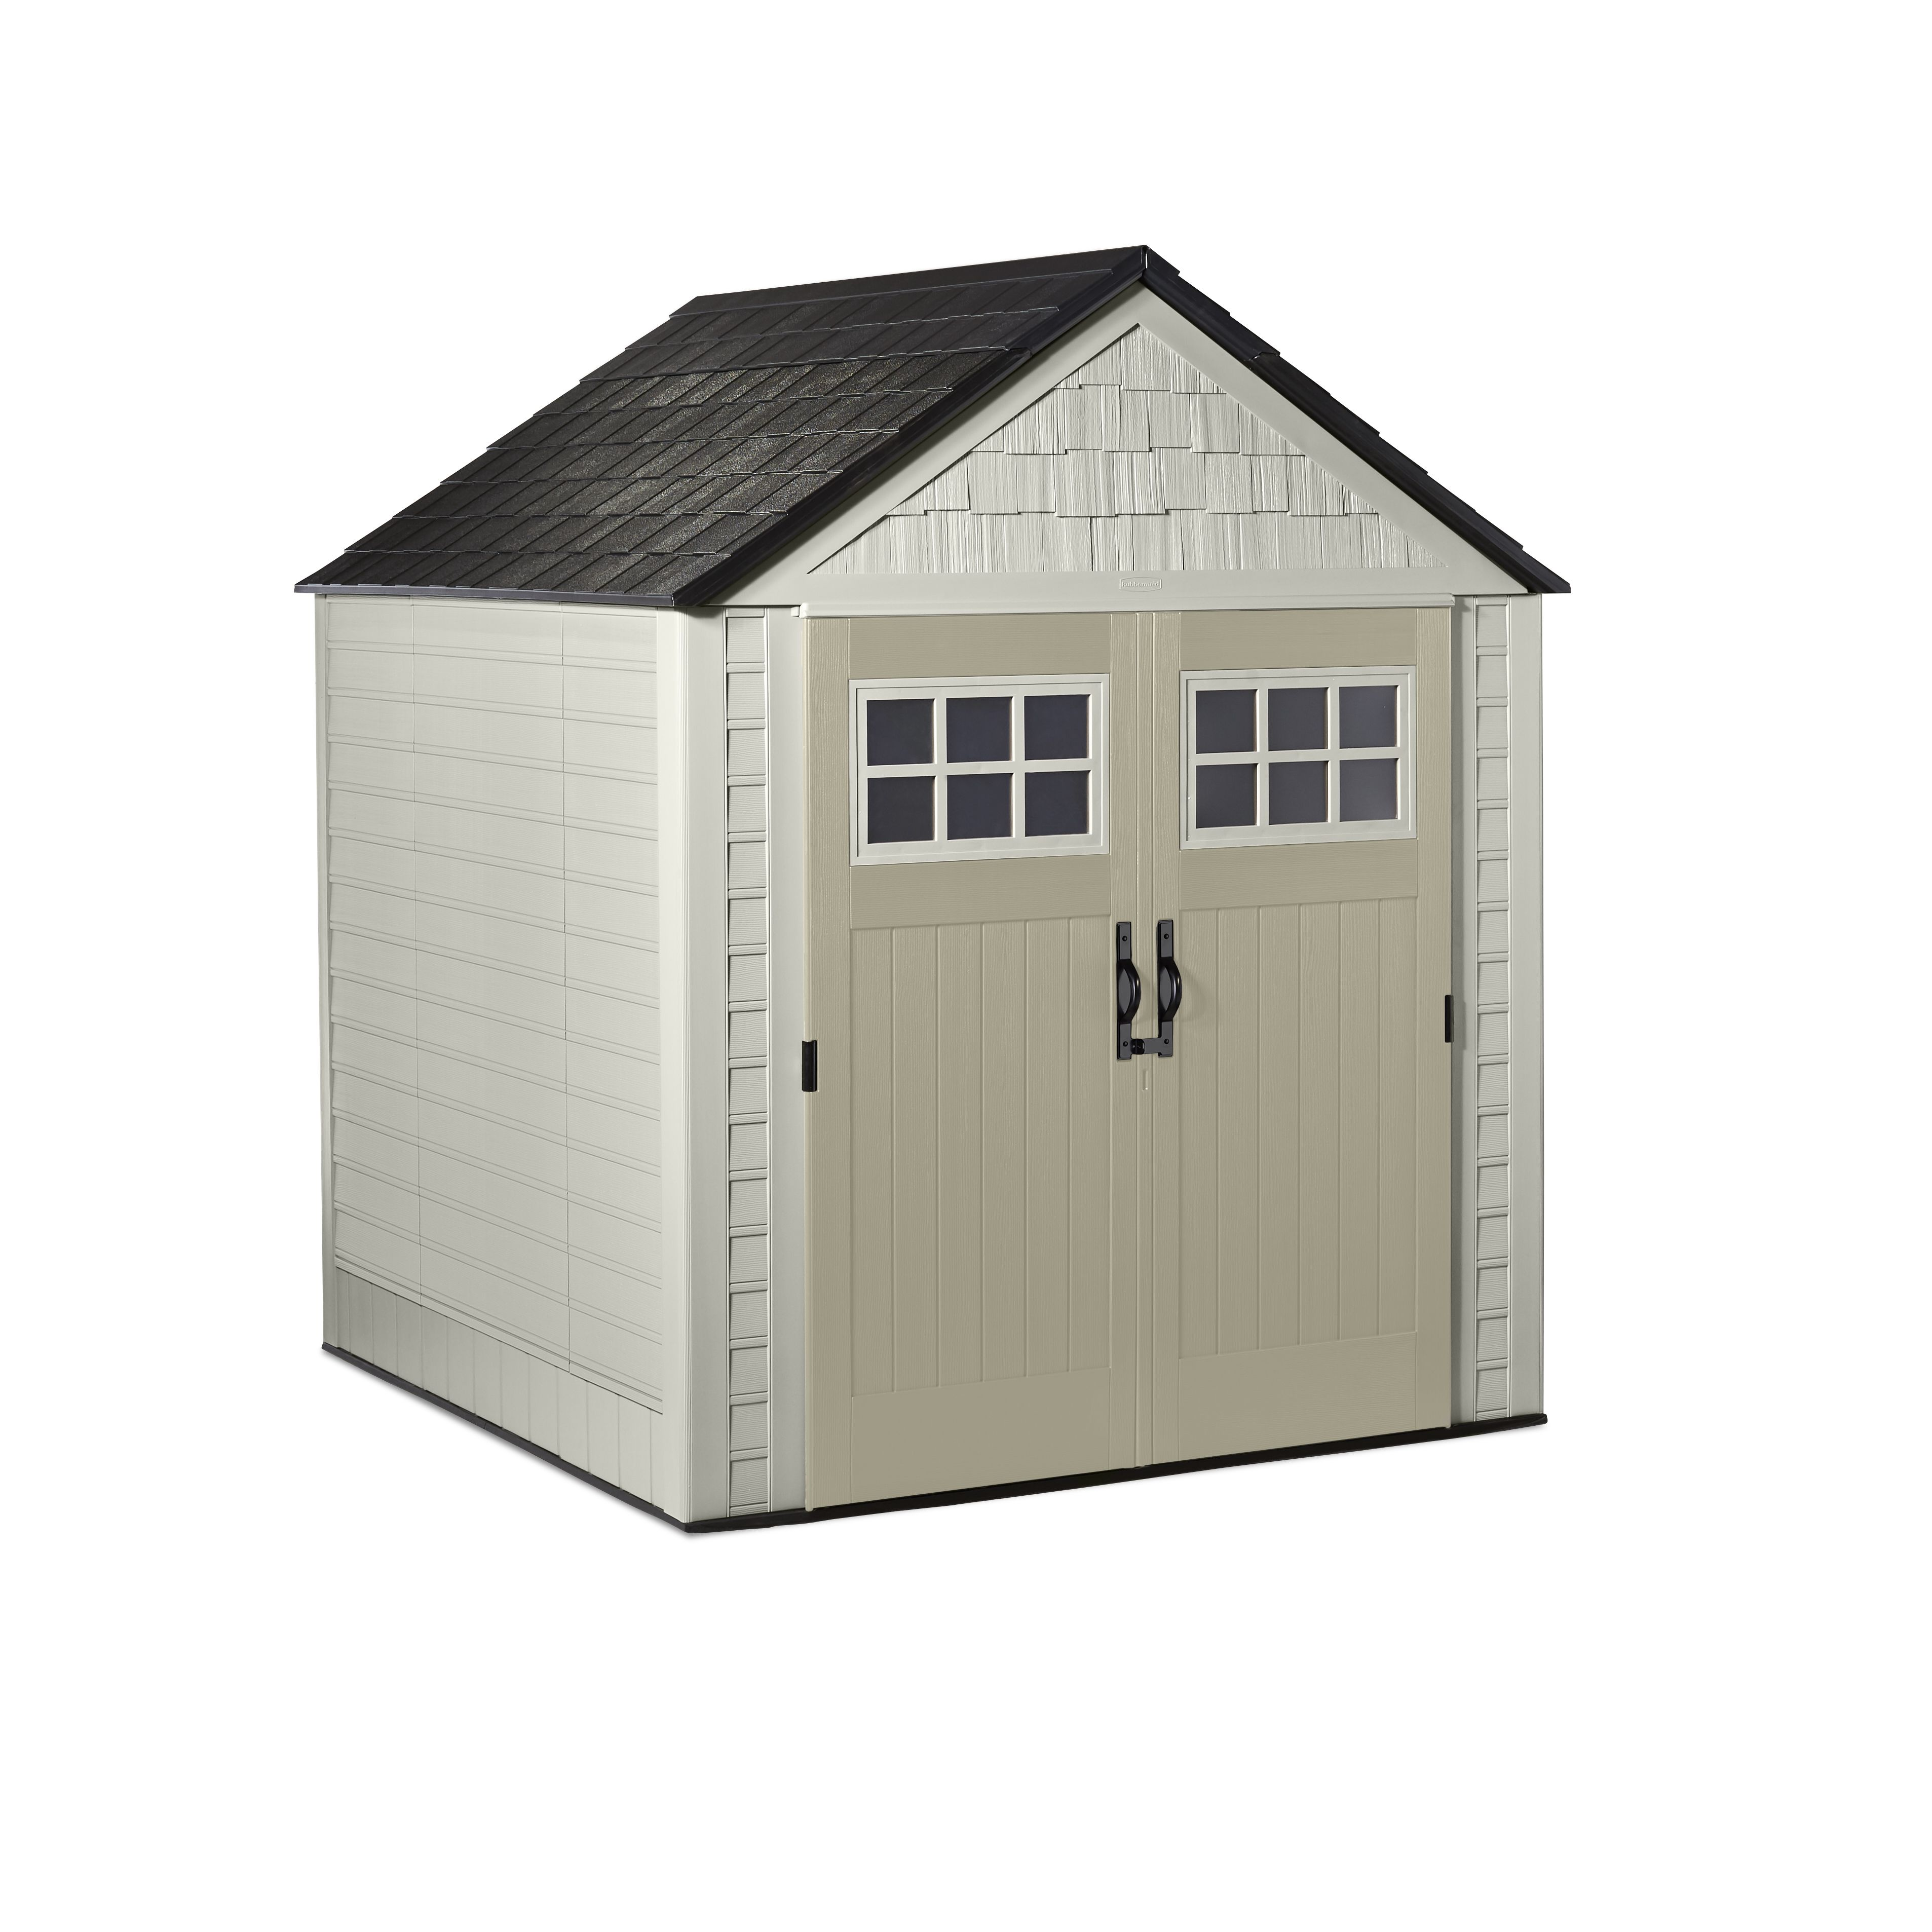 Rubbermaid 7 X 7 Ft Large Vertical Storage Shed Sandstone Onyx